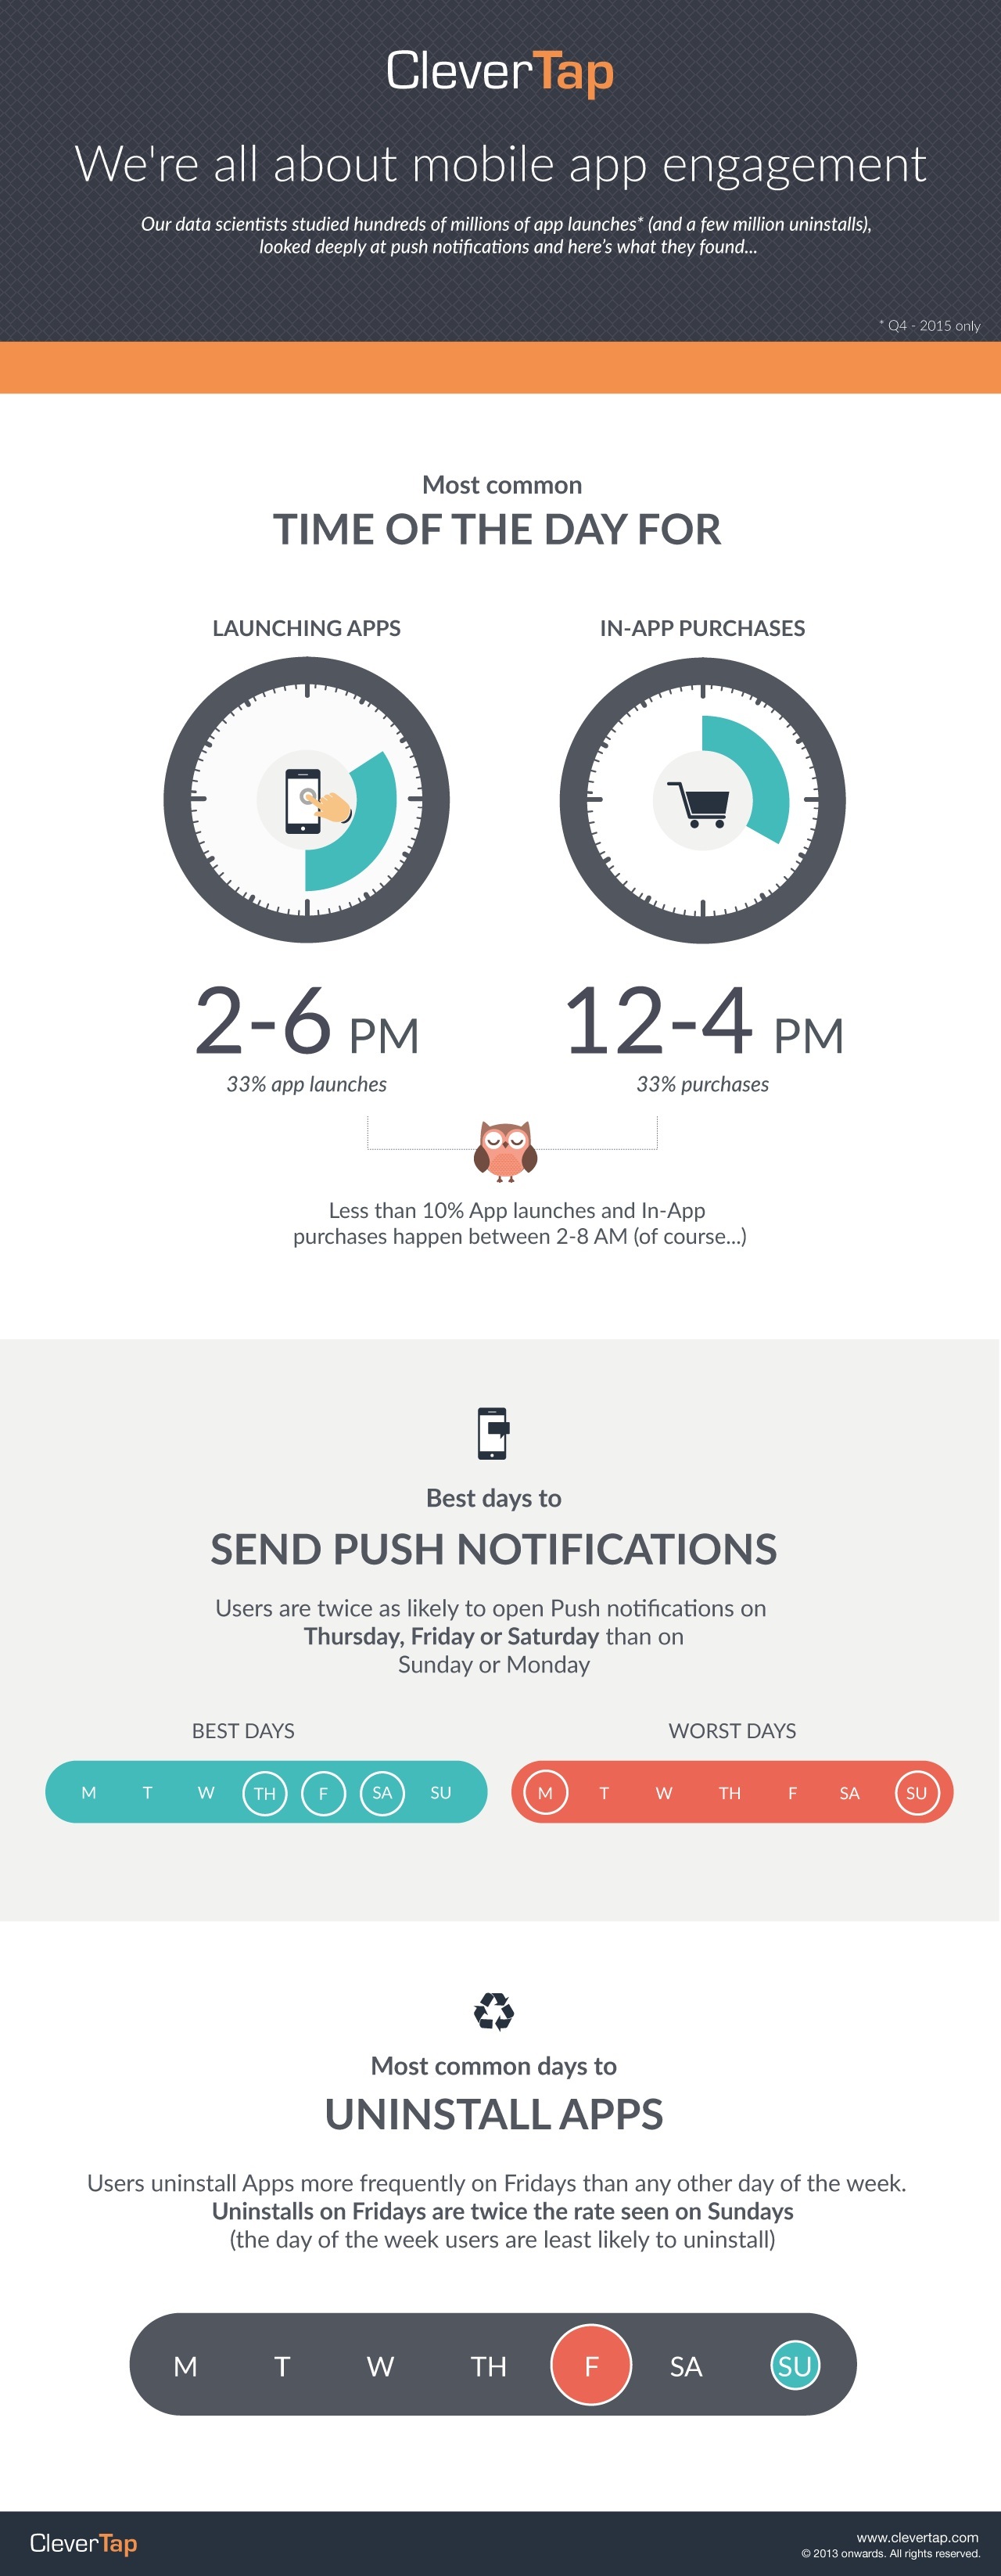 clevertap-infographic